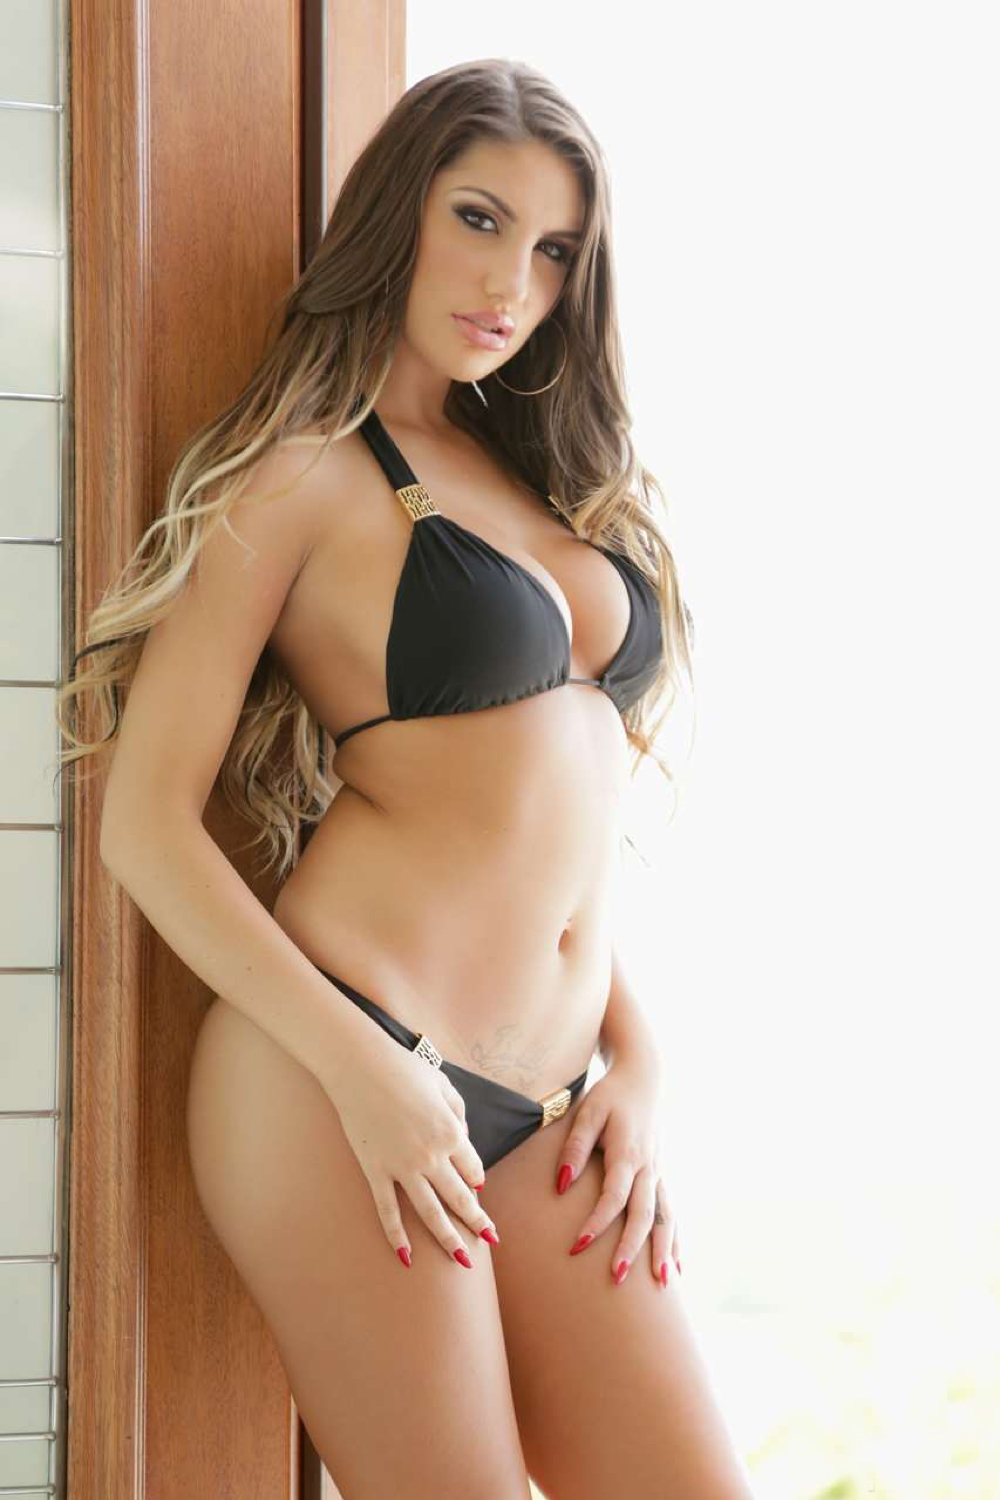 Vr 360 august ames